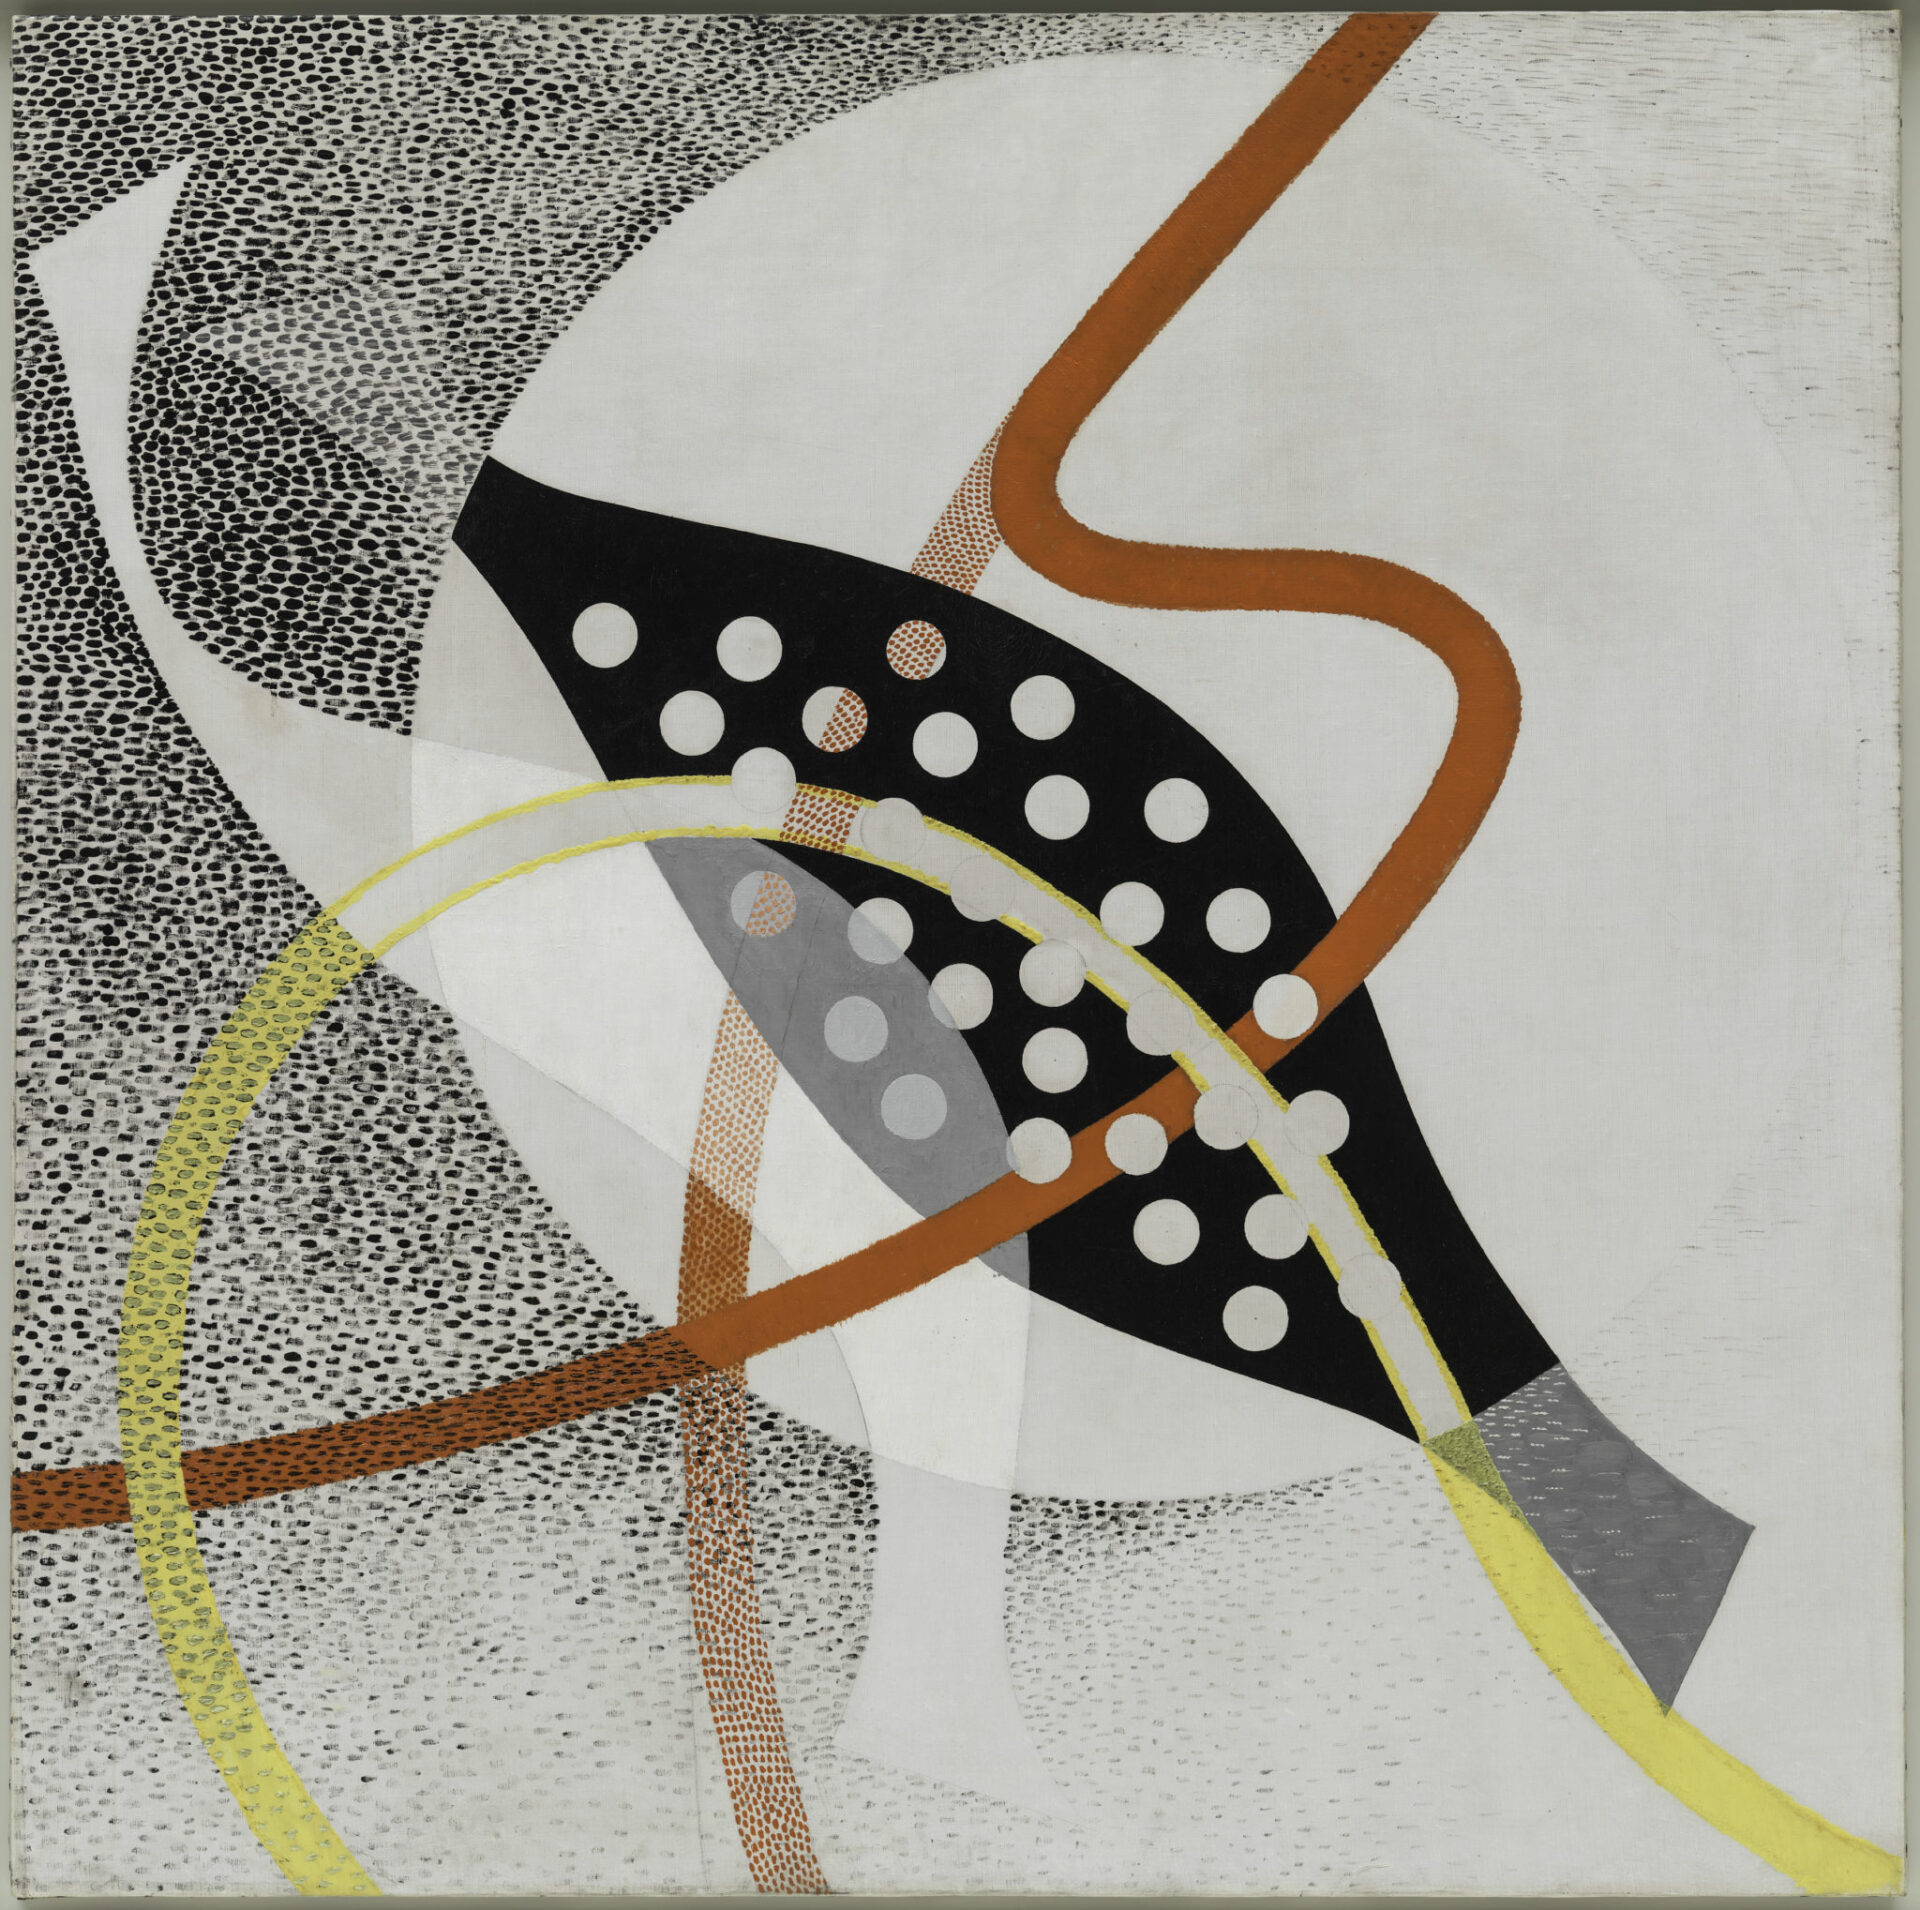 Moholy-Nagy, CH BEATA I, 1939. Oil and graphite on canvas, 118-9x119.8 cm. Solomon R. Guggenheim Museum, New York, Solomon R. Guggenheim Founding Collection 48.1128 © Hattula Moholy-Nagy/VG Bild-Kunst, Bonn/Artists Right Society (ARS), New York